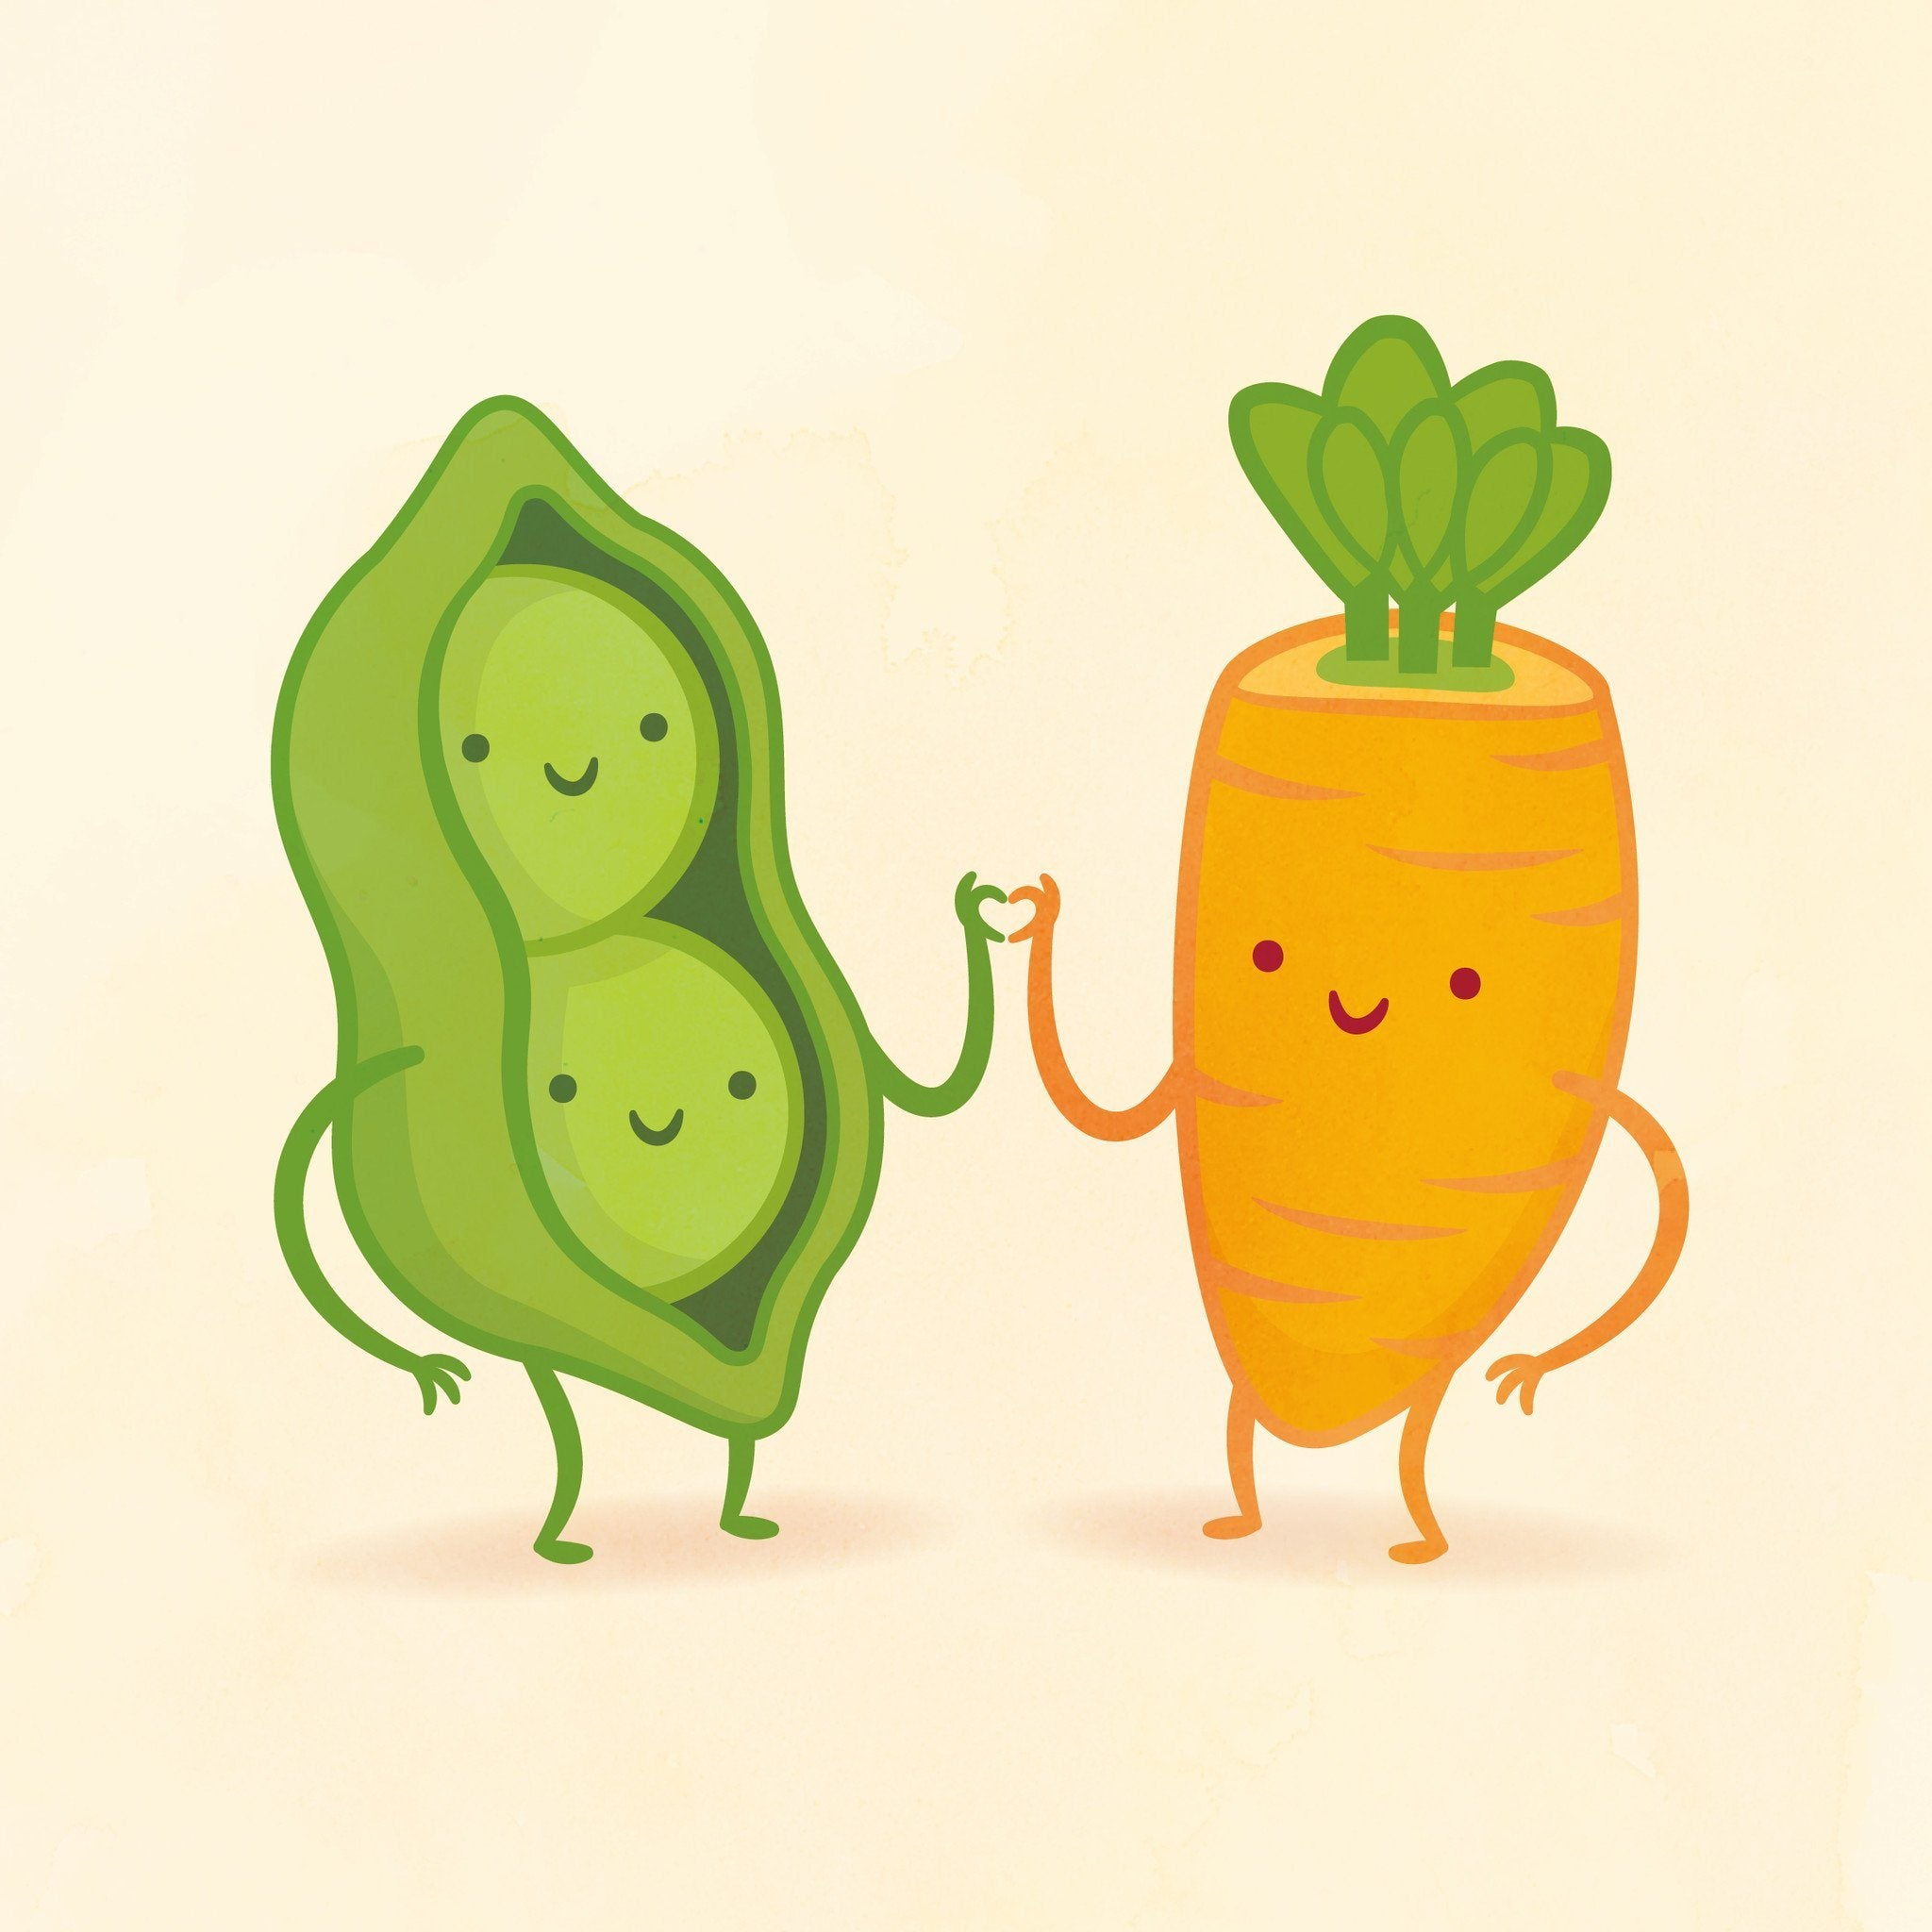 Peas And Carrot By Philip Tseng Iam8bit